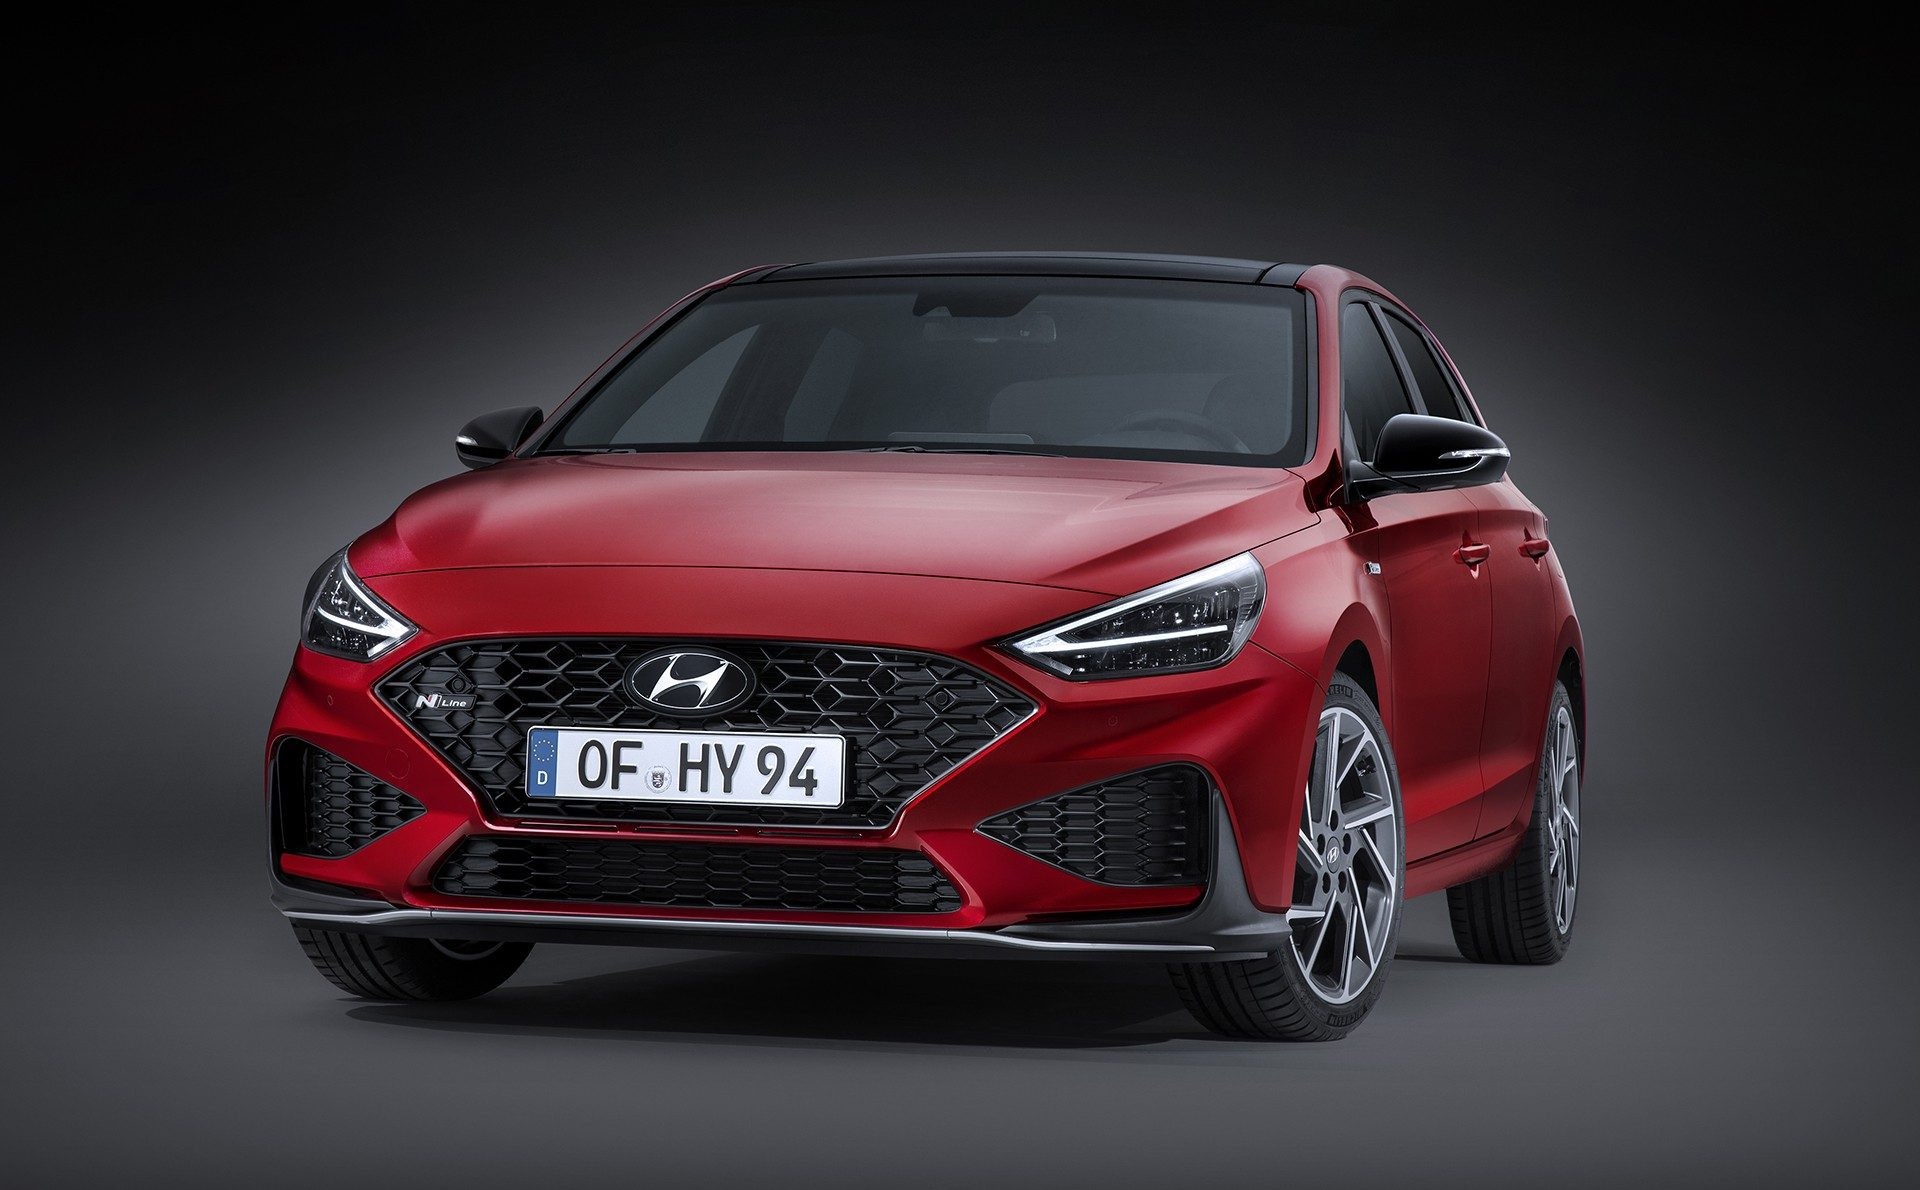 Hyundai Gives 2020 I30 Range A Facelift, Mild Hybrids And - 2022 Kia Forte 2.0 Horsepower Premier Specs, Electric Range